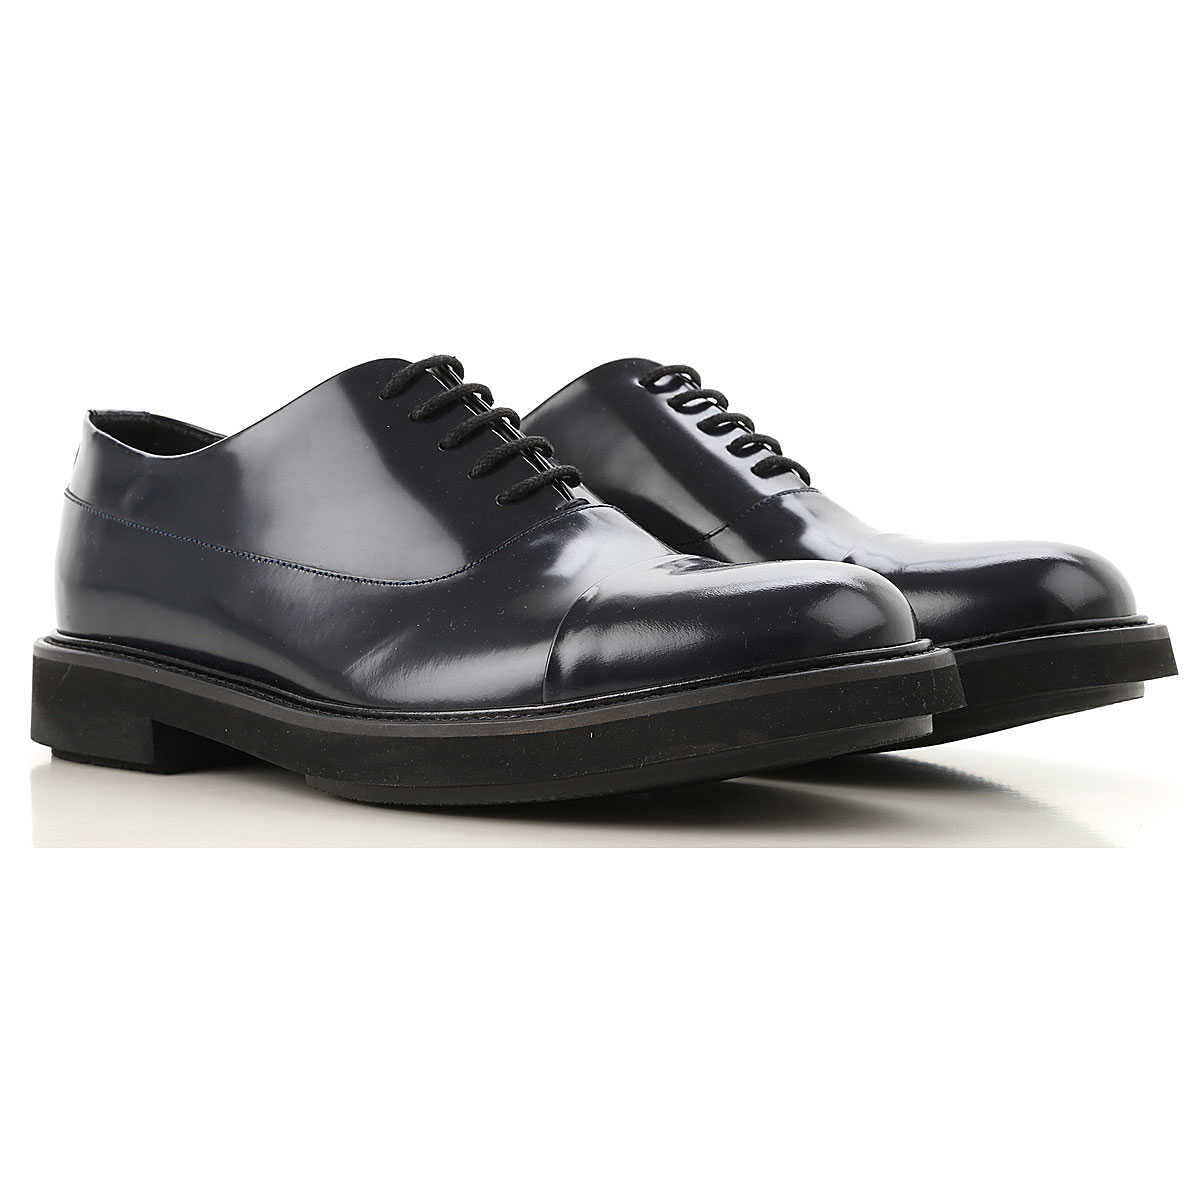 Emporio Armani Lace Up Shoes for Men Oxfords Derbies and Brogues On Sale Canada - GOOFASH - Mens FORMAL SHOES